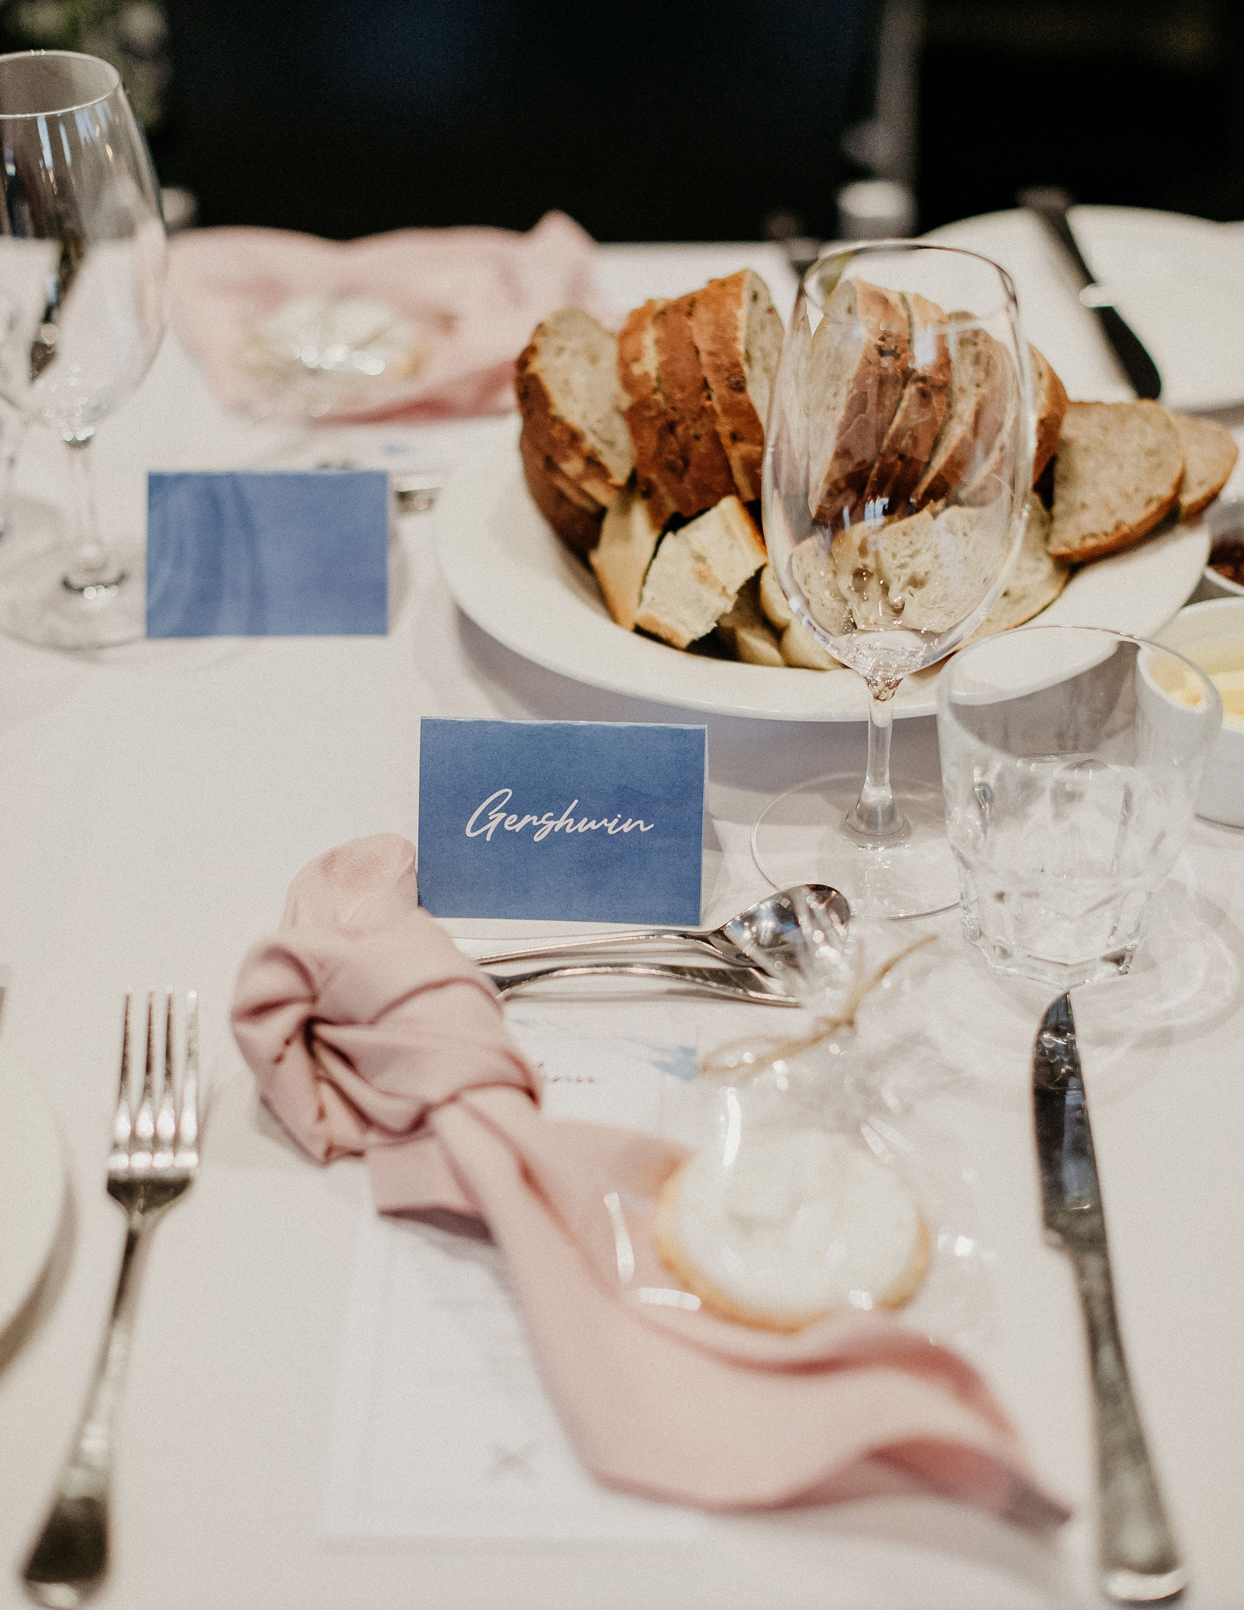 wedding place setting of pink napkin and place card with bread bowl